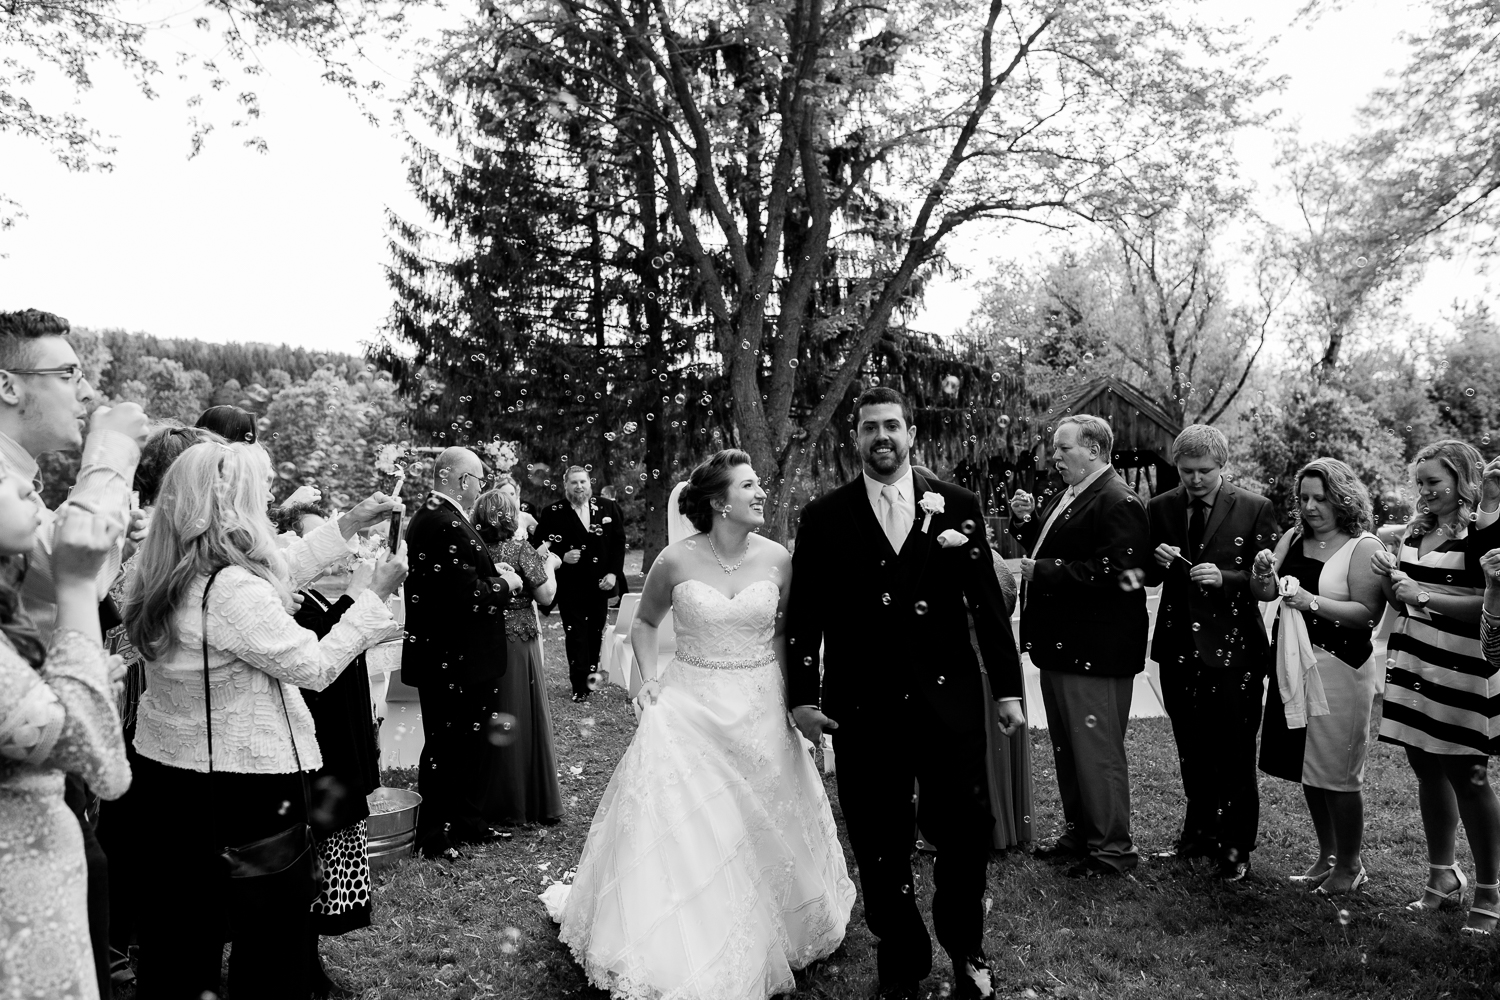 Bride and groom walk down the aisle post wedding ceremony as guests blow bubbles around them. The image is in black and white. The bride is smiling up at the groom.